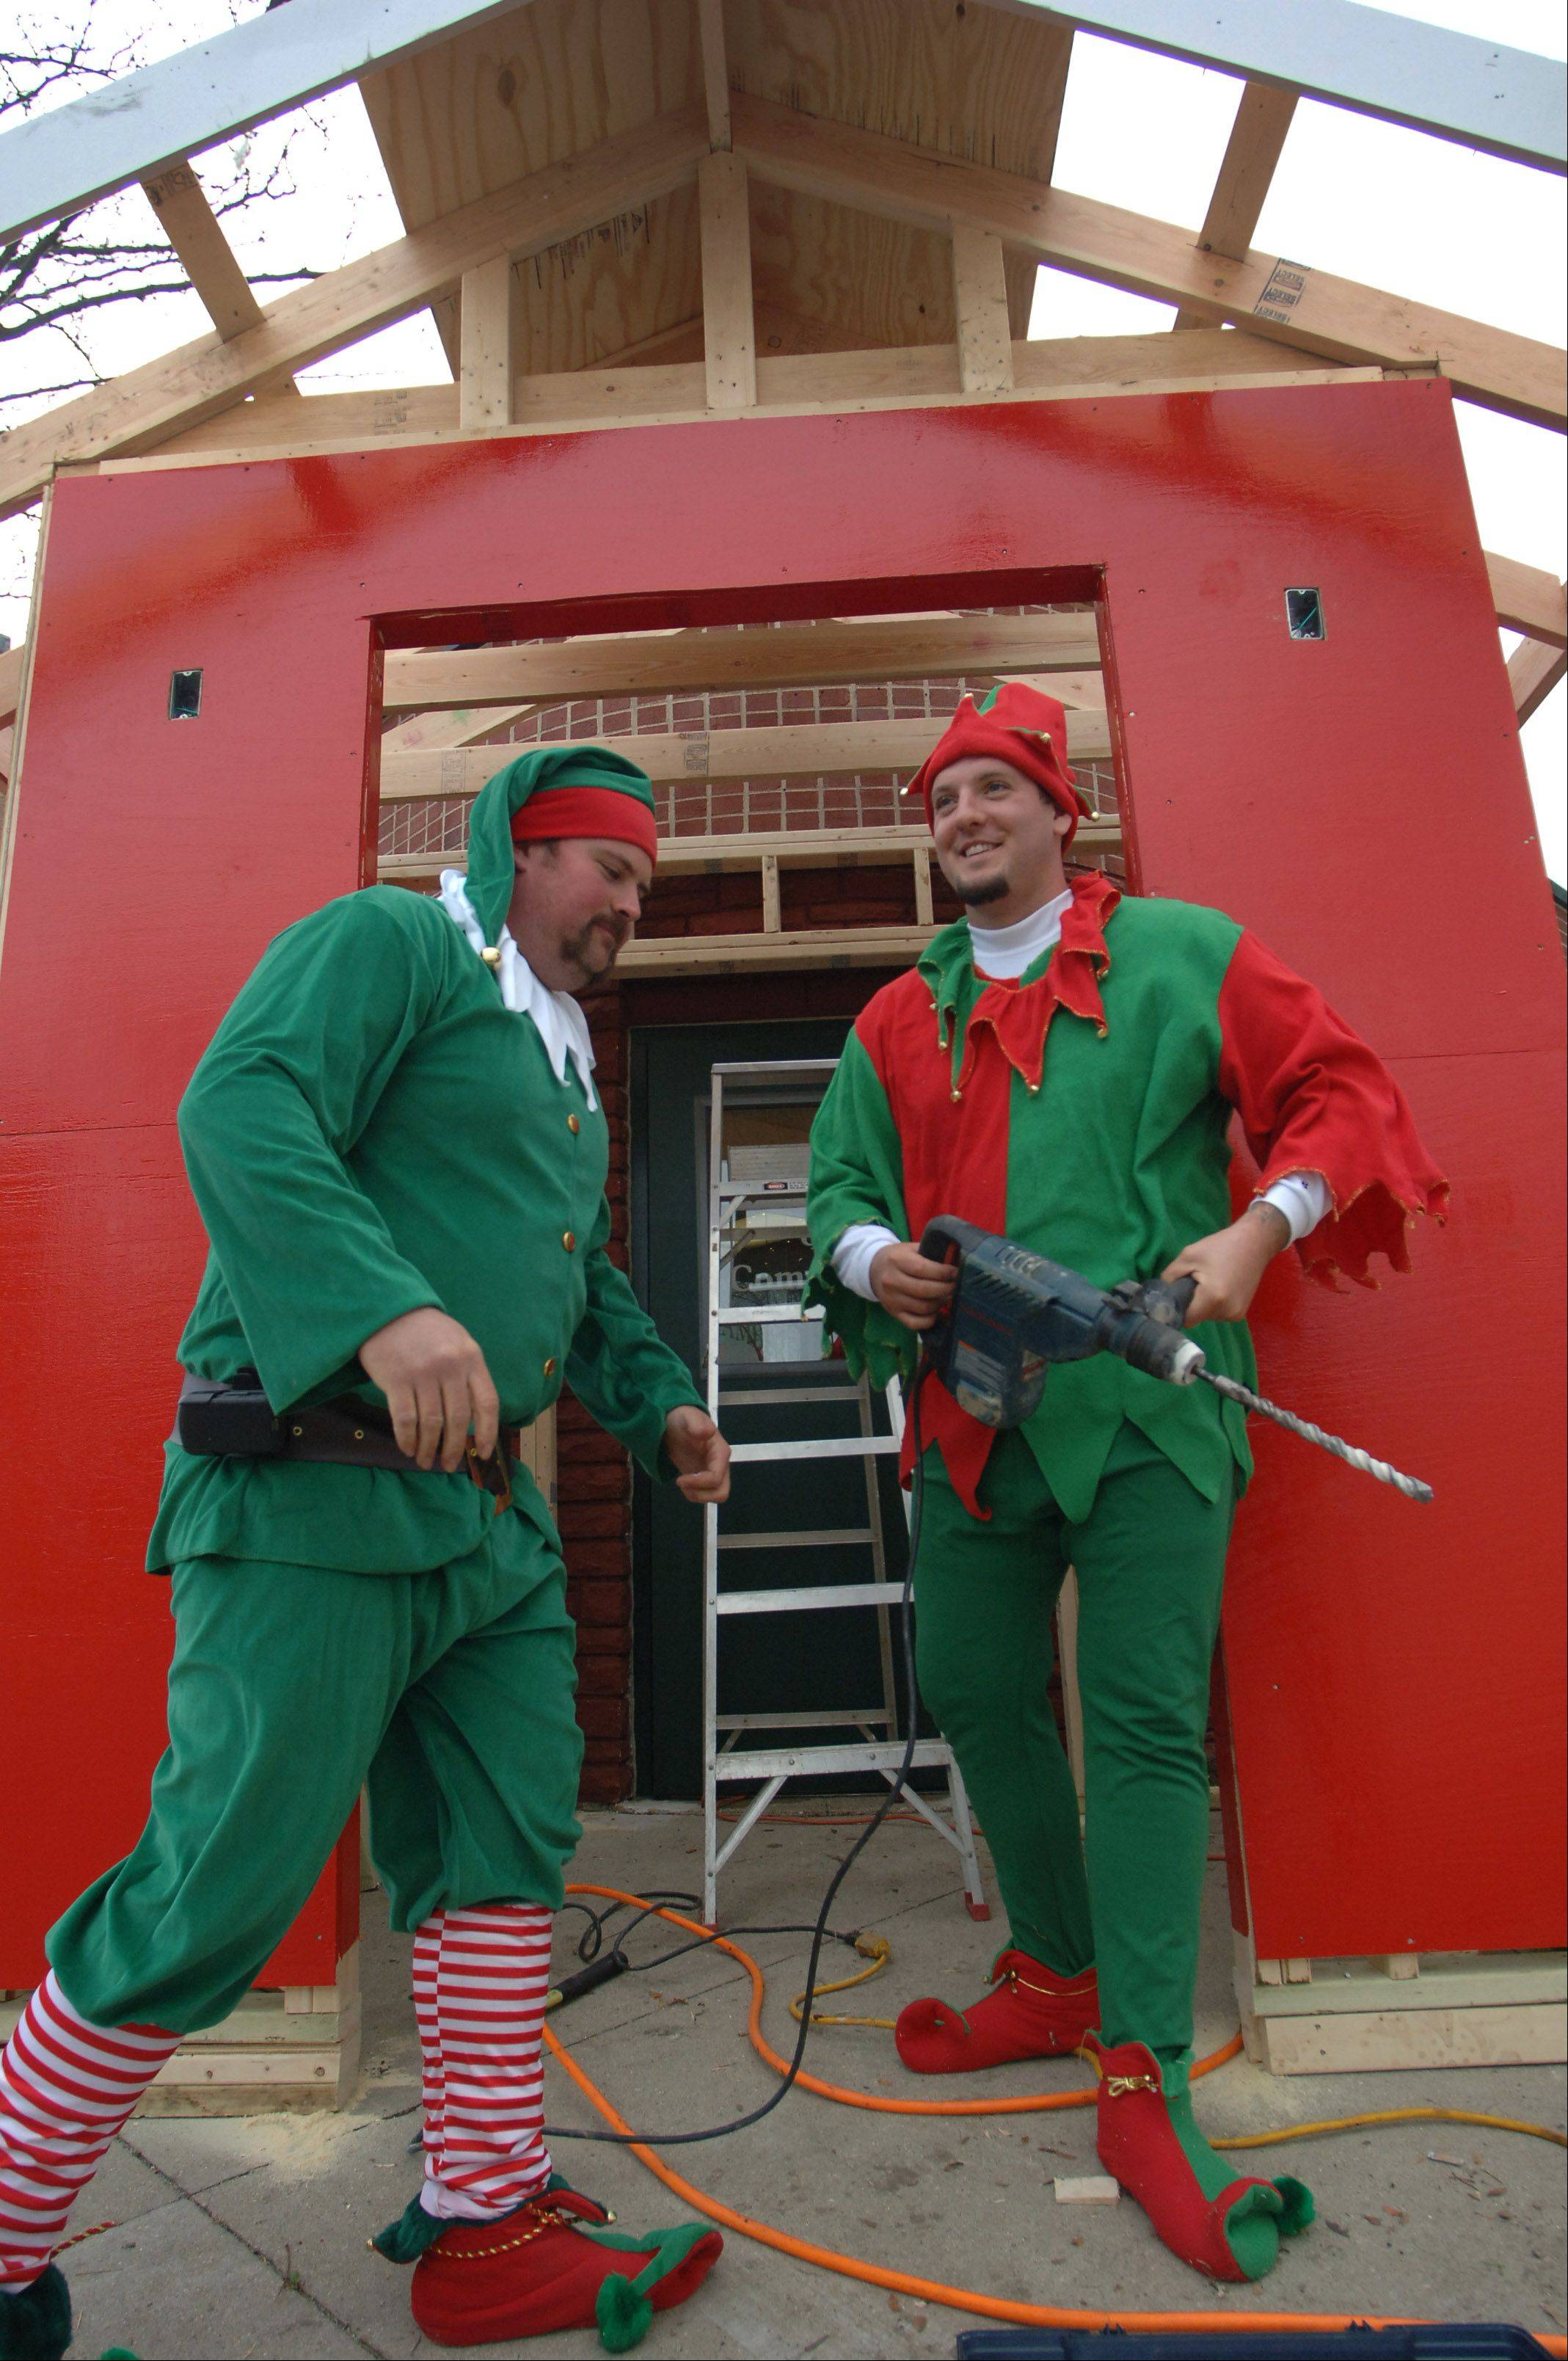 Antioch Public Works employees Tanner Dowell, left, and Scott Dewar are dressed as elves Wednesday while building an entrance to the new Santa's Enchanted Village. Santa will be visiting with children starting Nov. 23 just inside the chamber of commerce entrance of village hall.